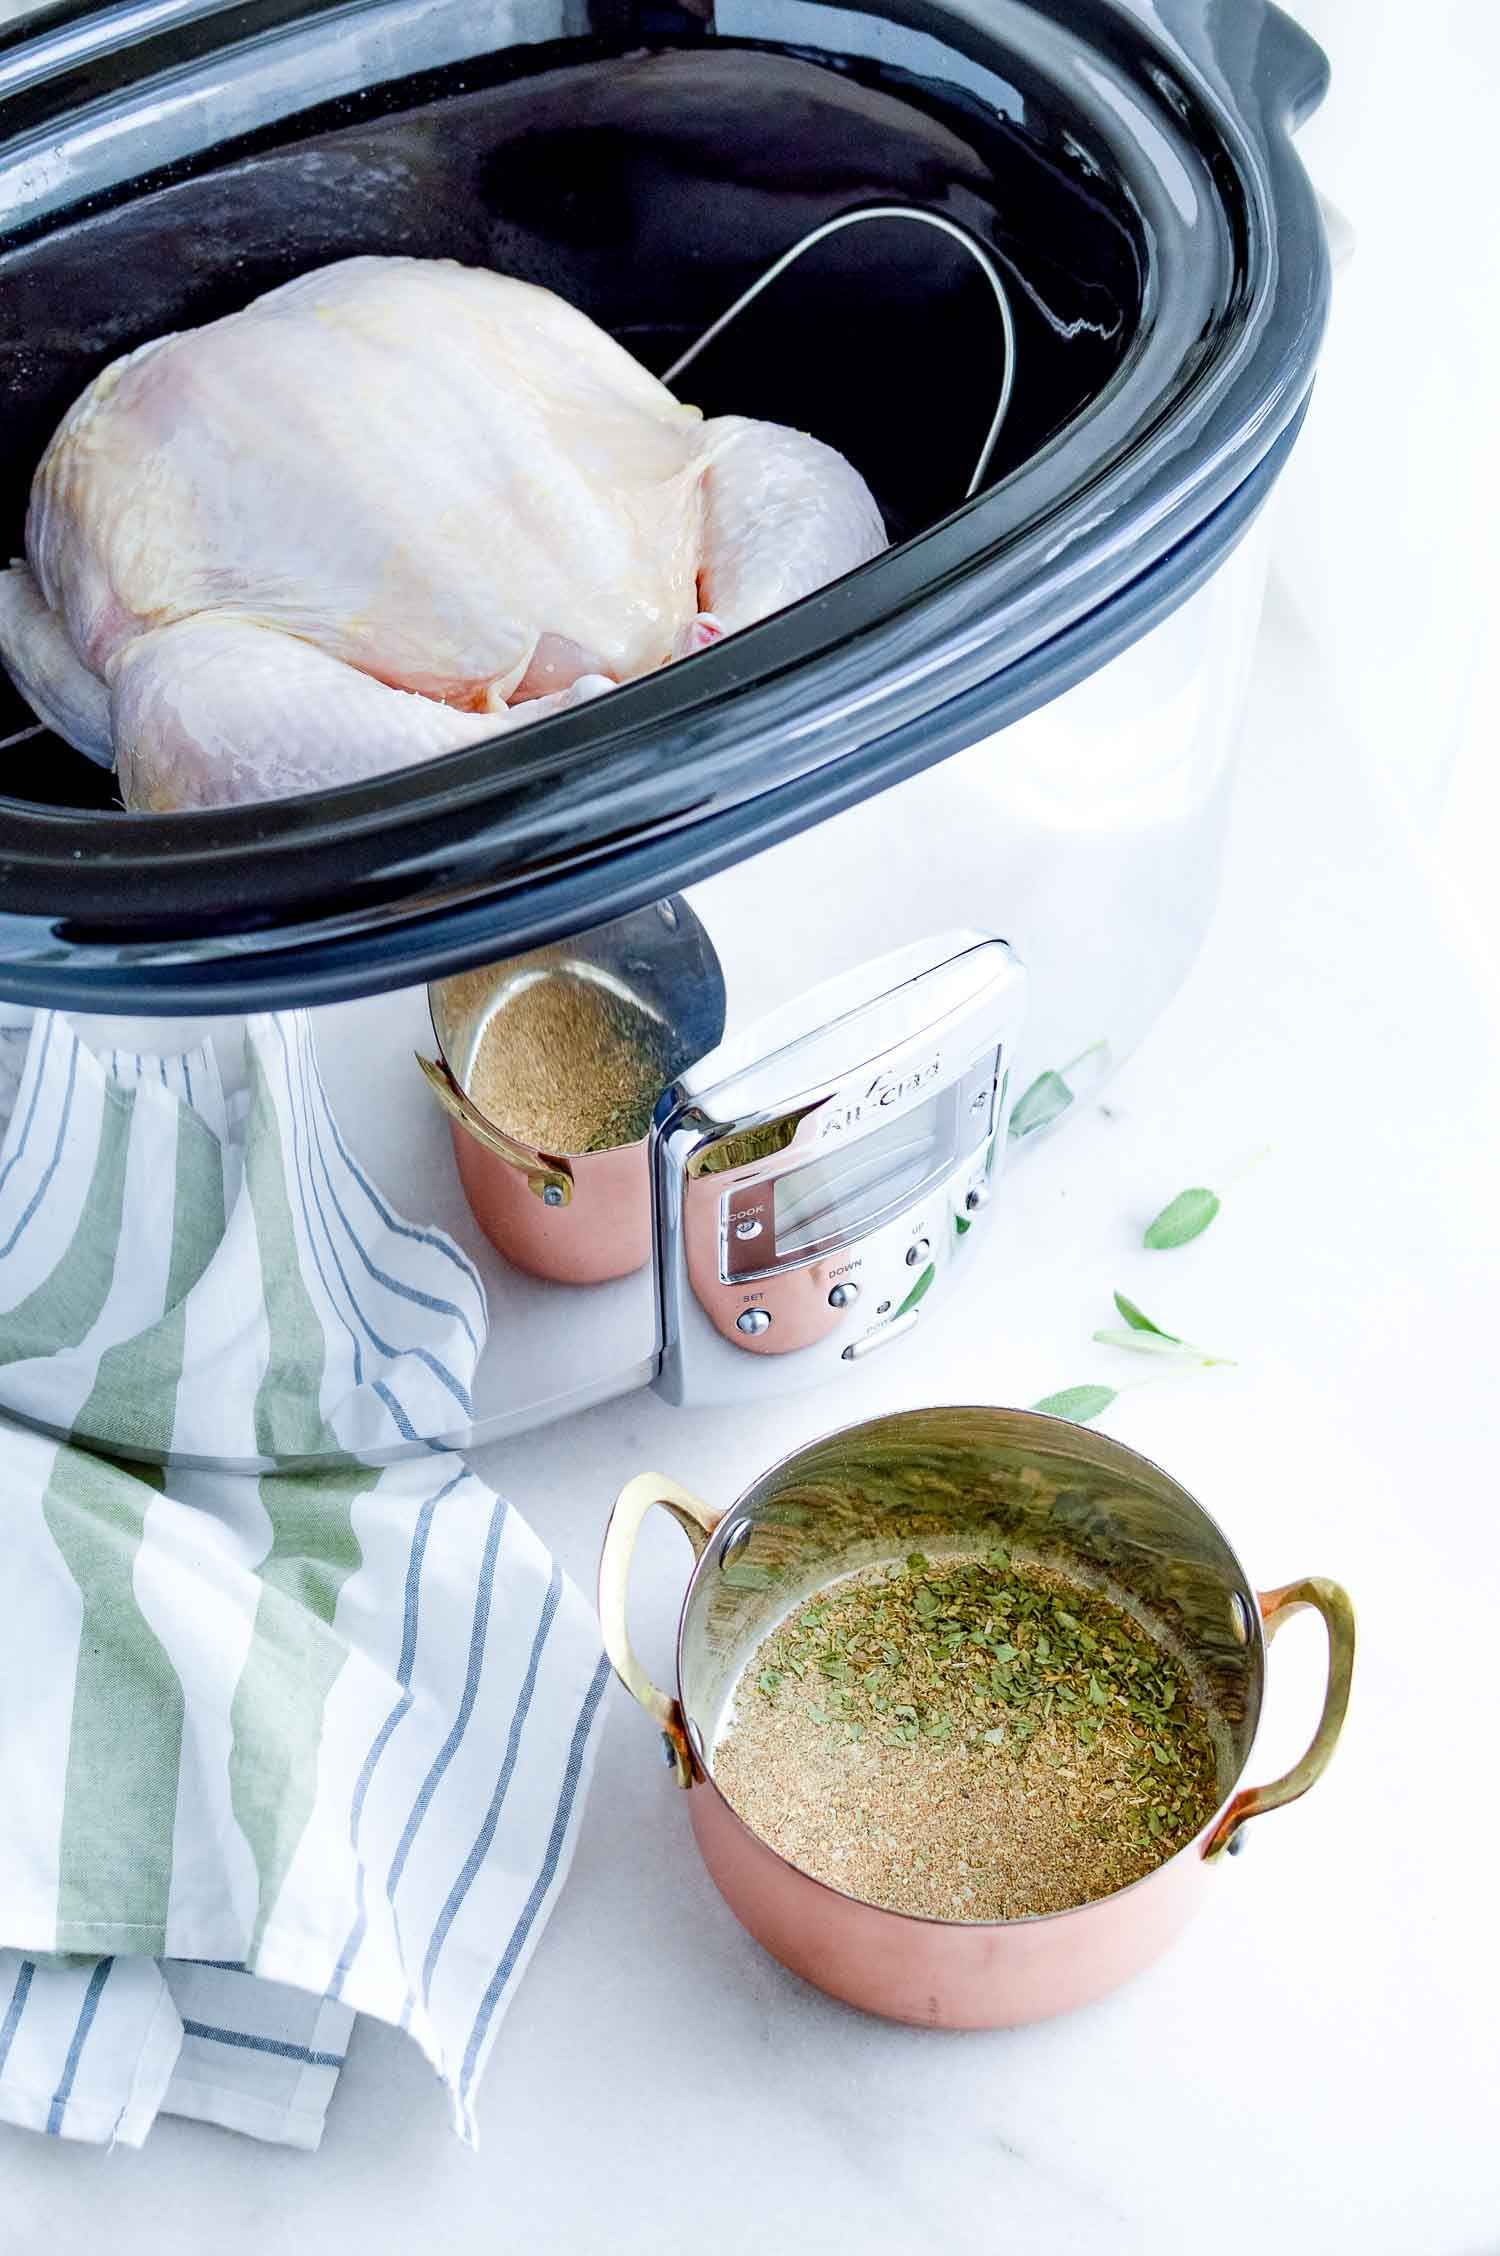 A slow cooker with a raw chicken in it and next to it a small metal bowl with seasonings in it.